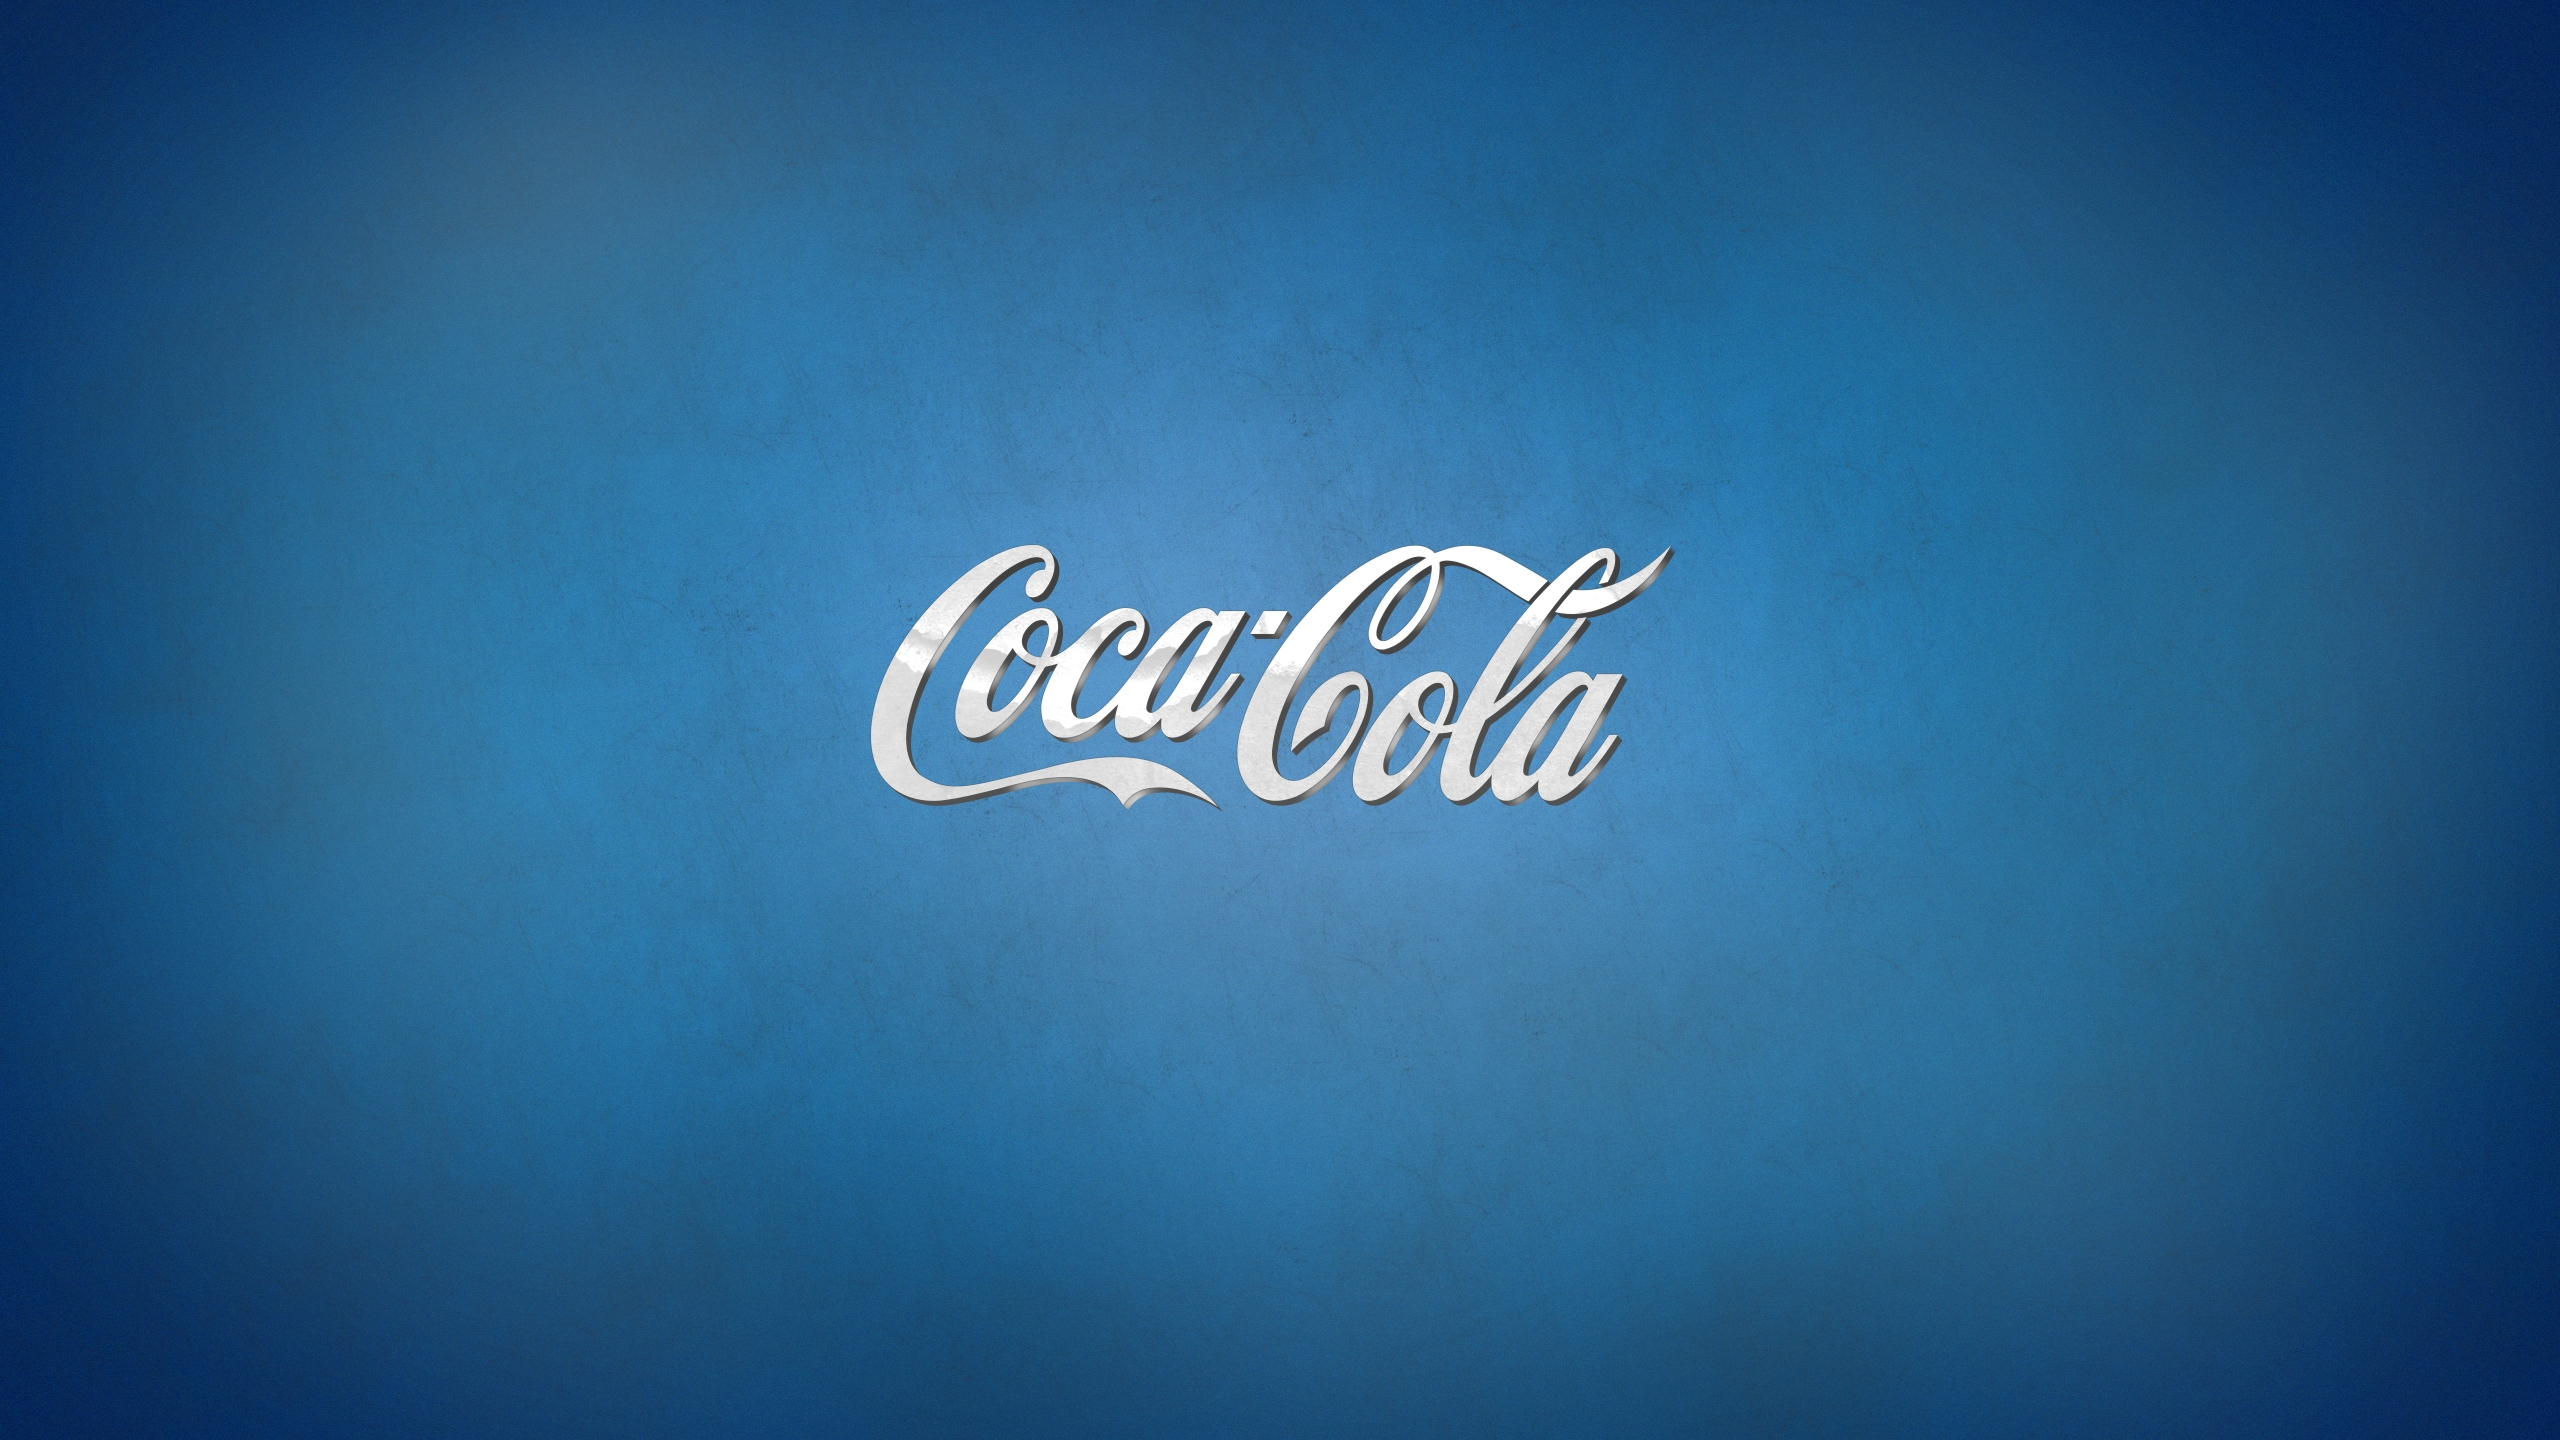 Cola Wallpaper HD Coca Cola HD Widescreen Wallpapers 2560x1440 2560x1440